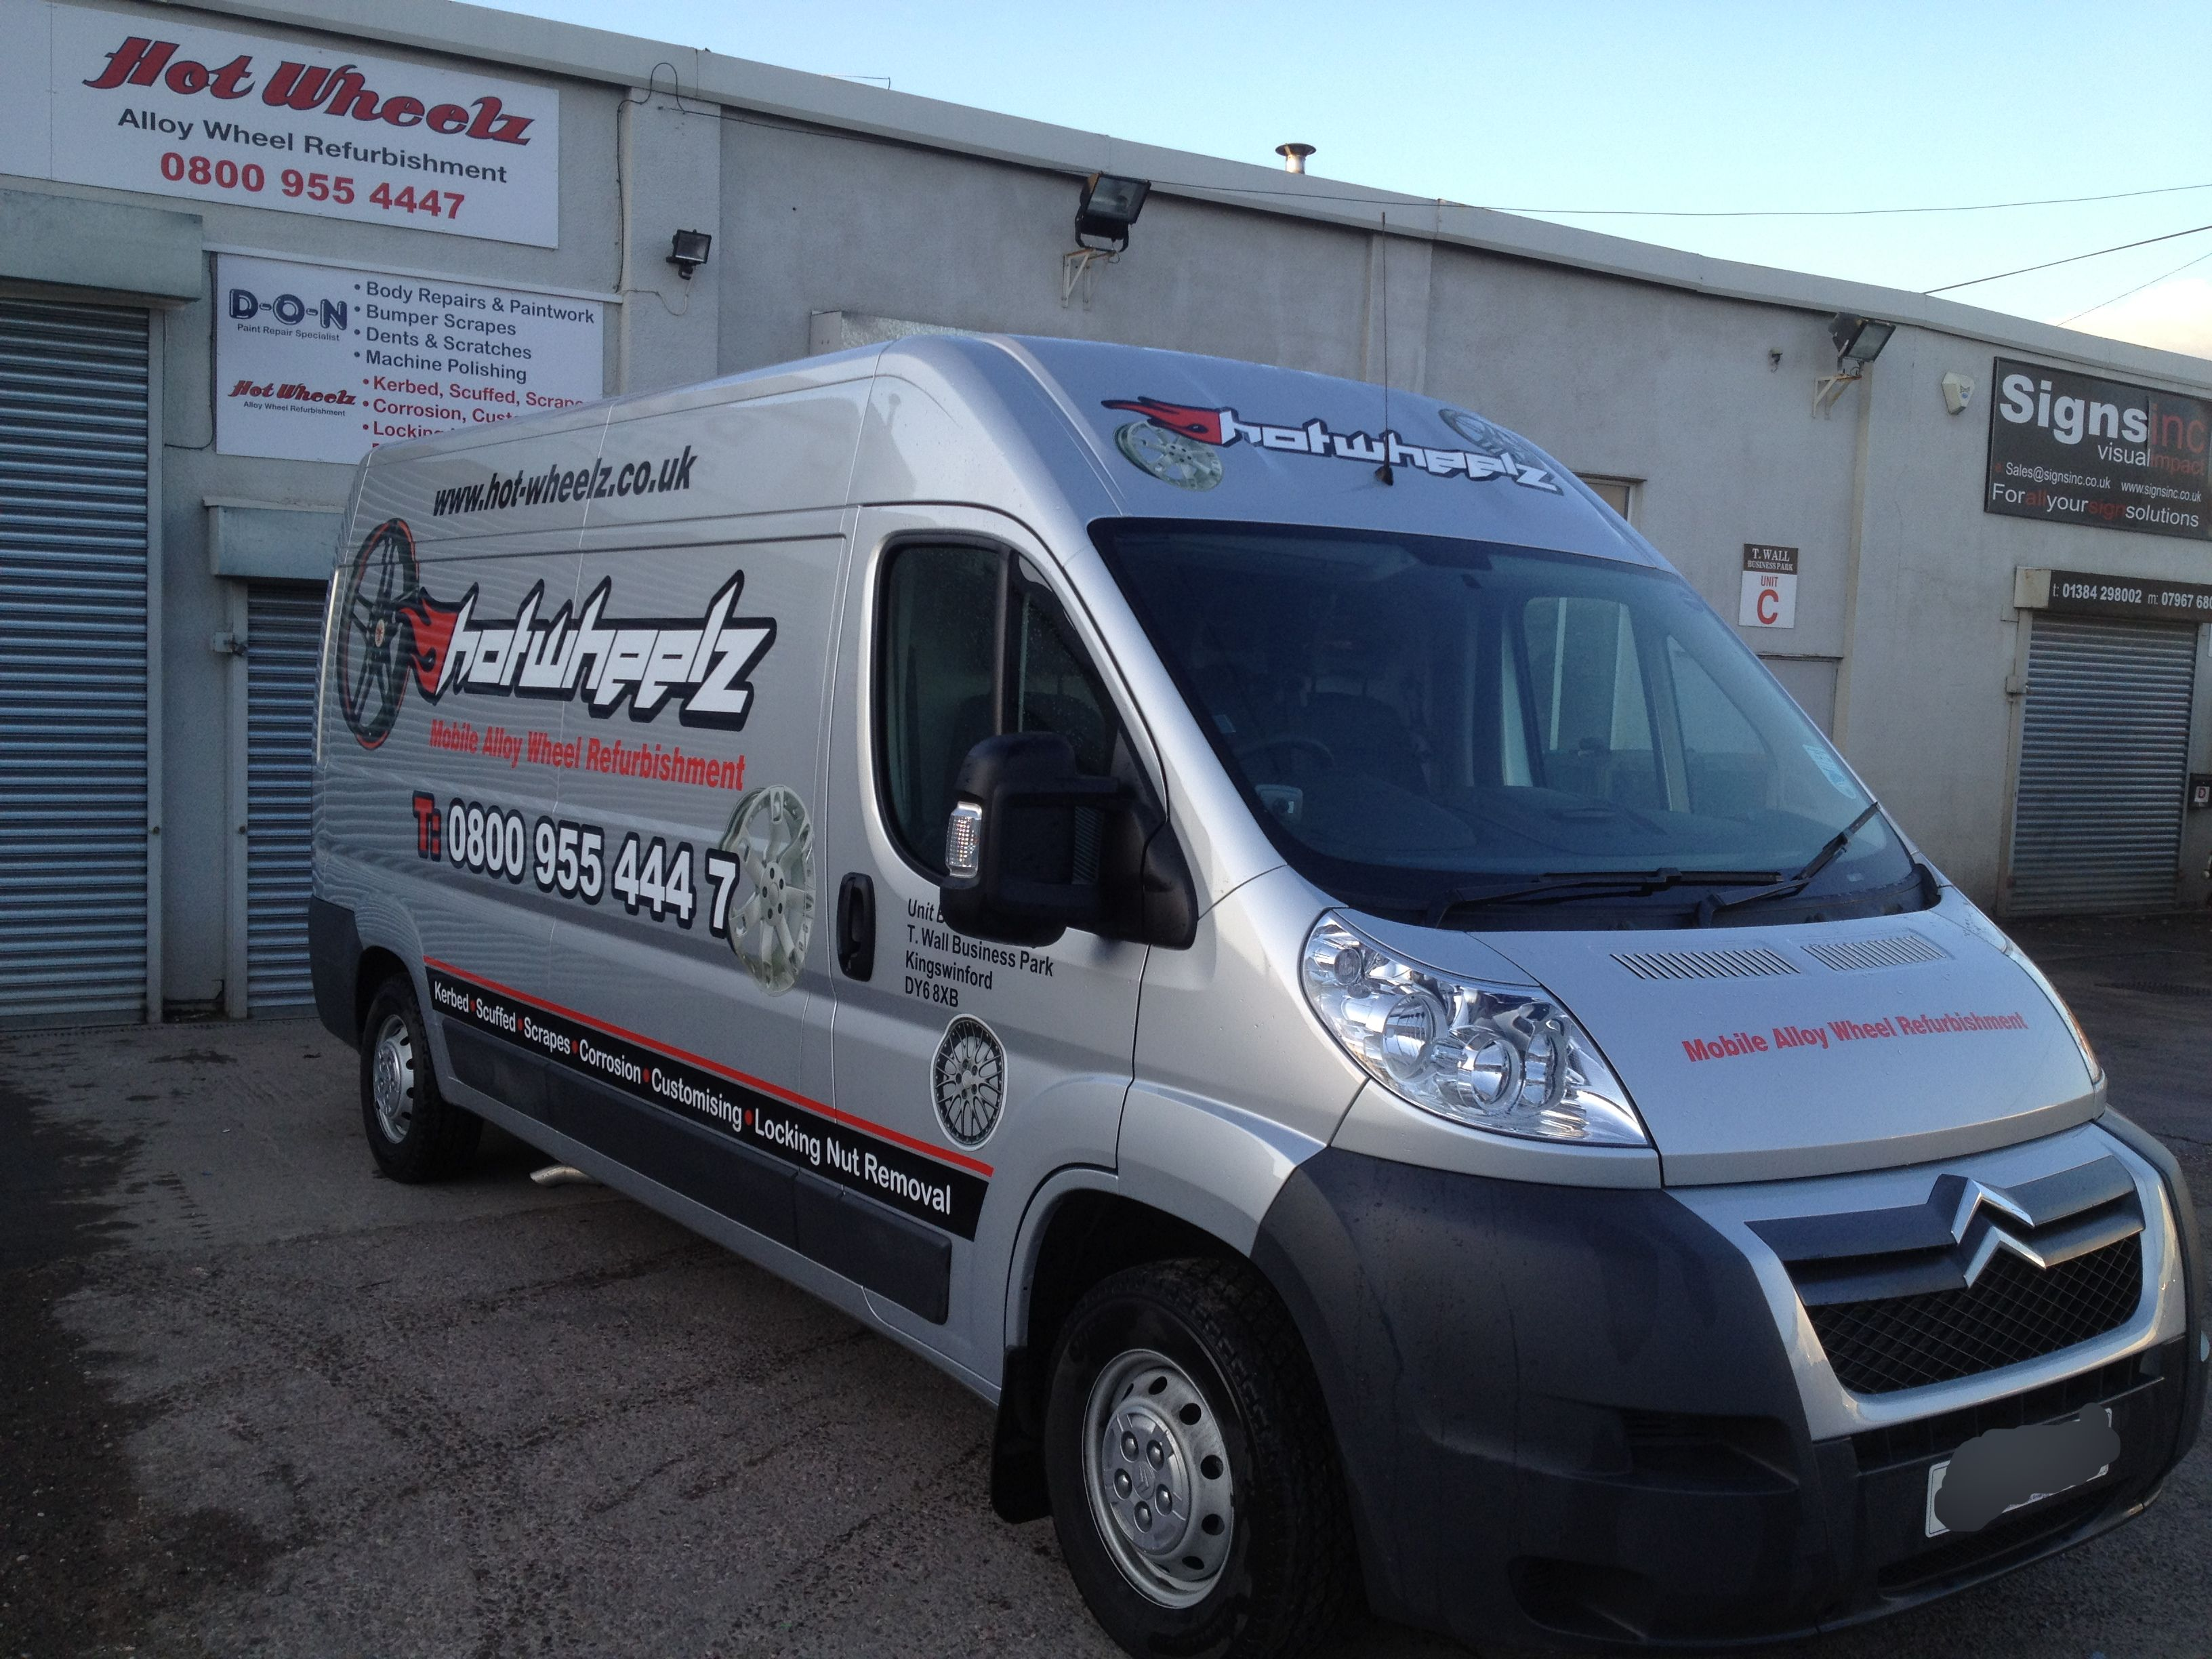 2010 new van and logo design and when we first moved in our premises